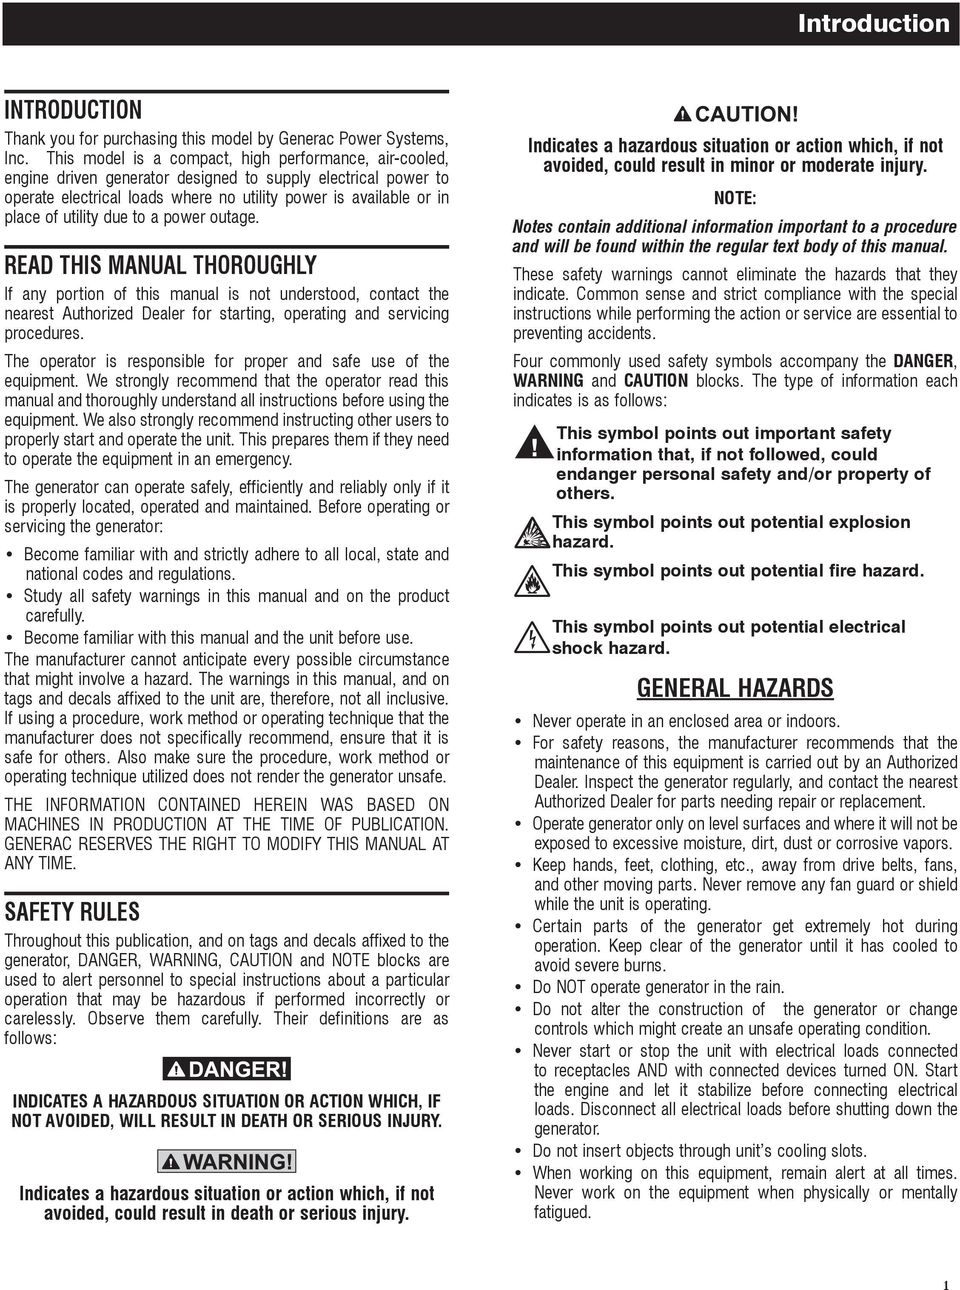 utility due to a power outage. READ THIS MANUAL THOROUGHLY If any portion of this manual is not understood, contact the nearest Authorized Dealer for starting, operating and servicing procedures.